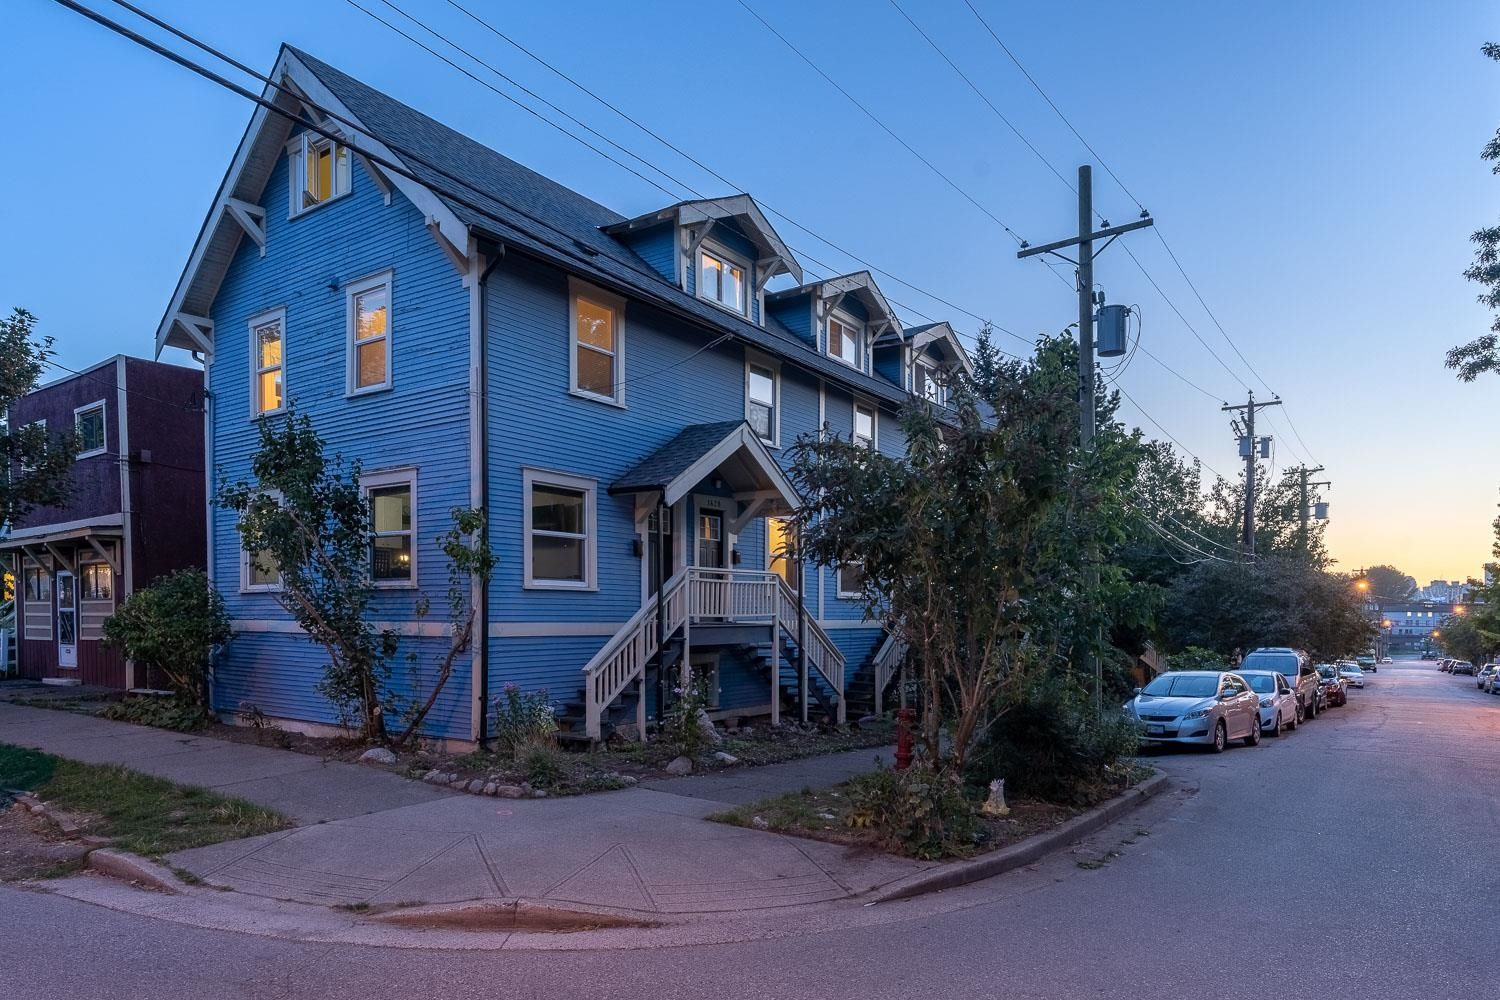 Main Photo: 1430 NAPIER Street in Vancouver: Grandview Woodland Multi-Family Commercial for sale (Vancouver East)  : MLS®# C8040090